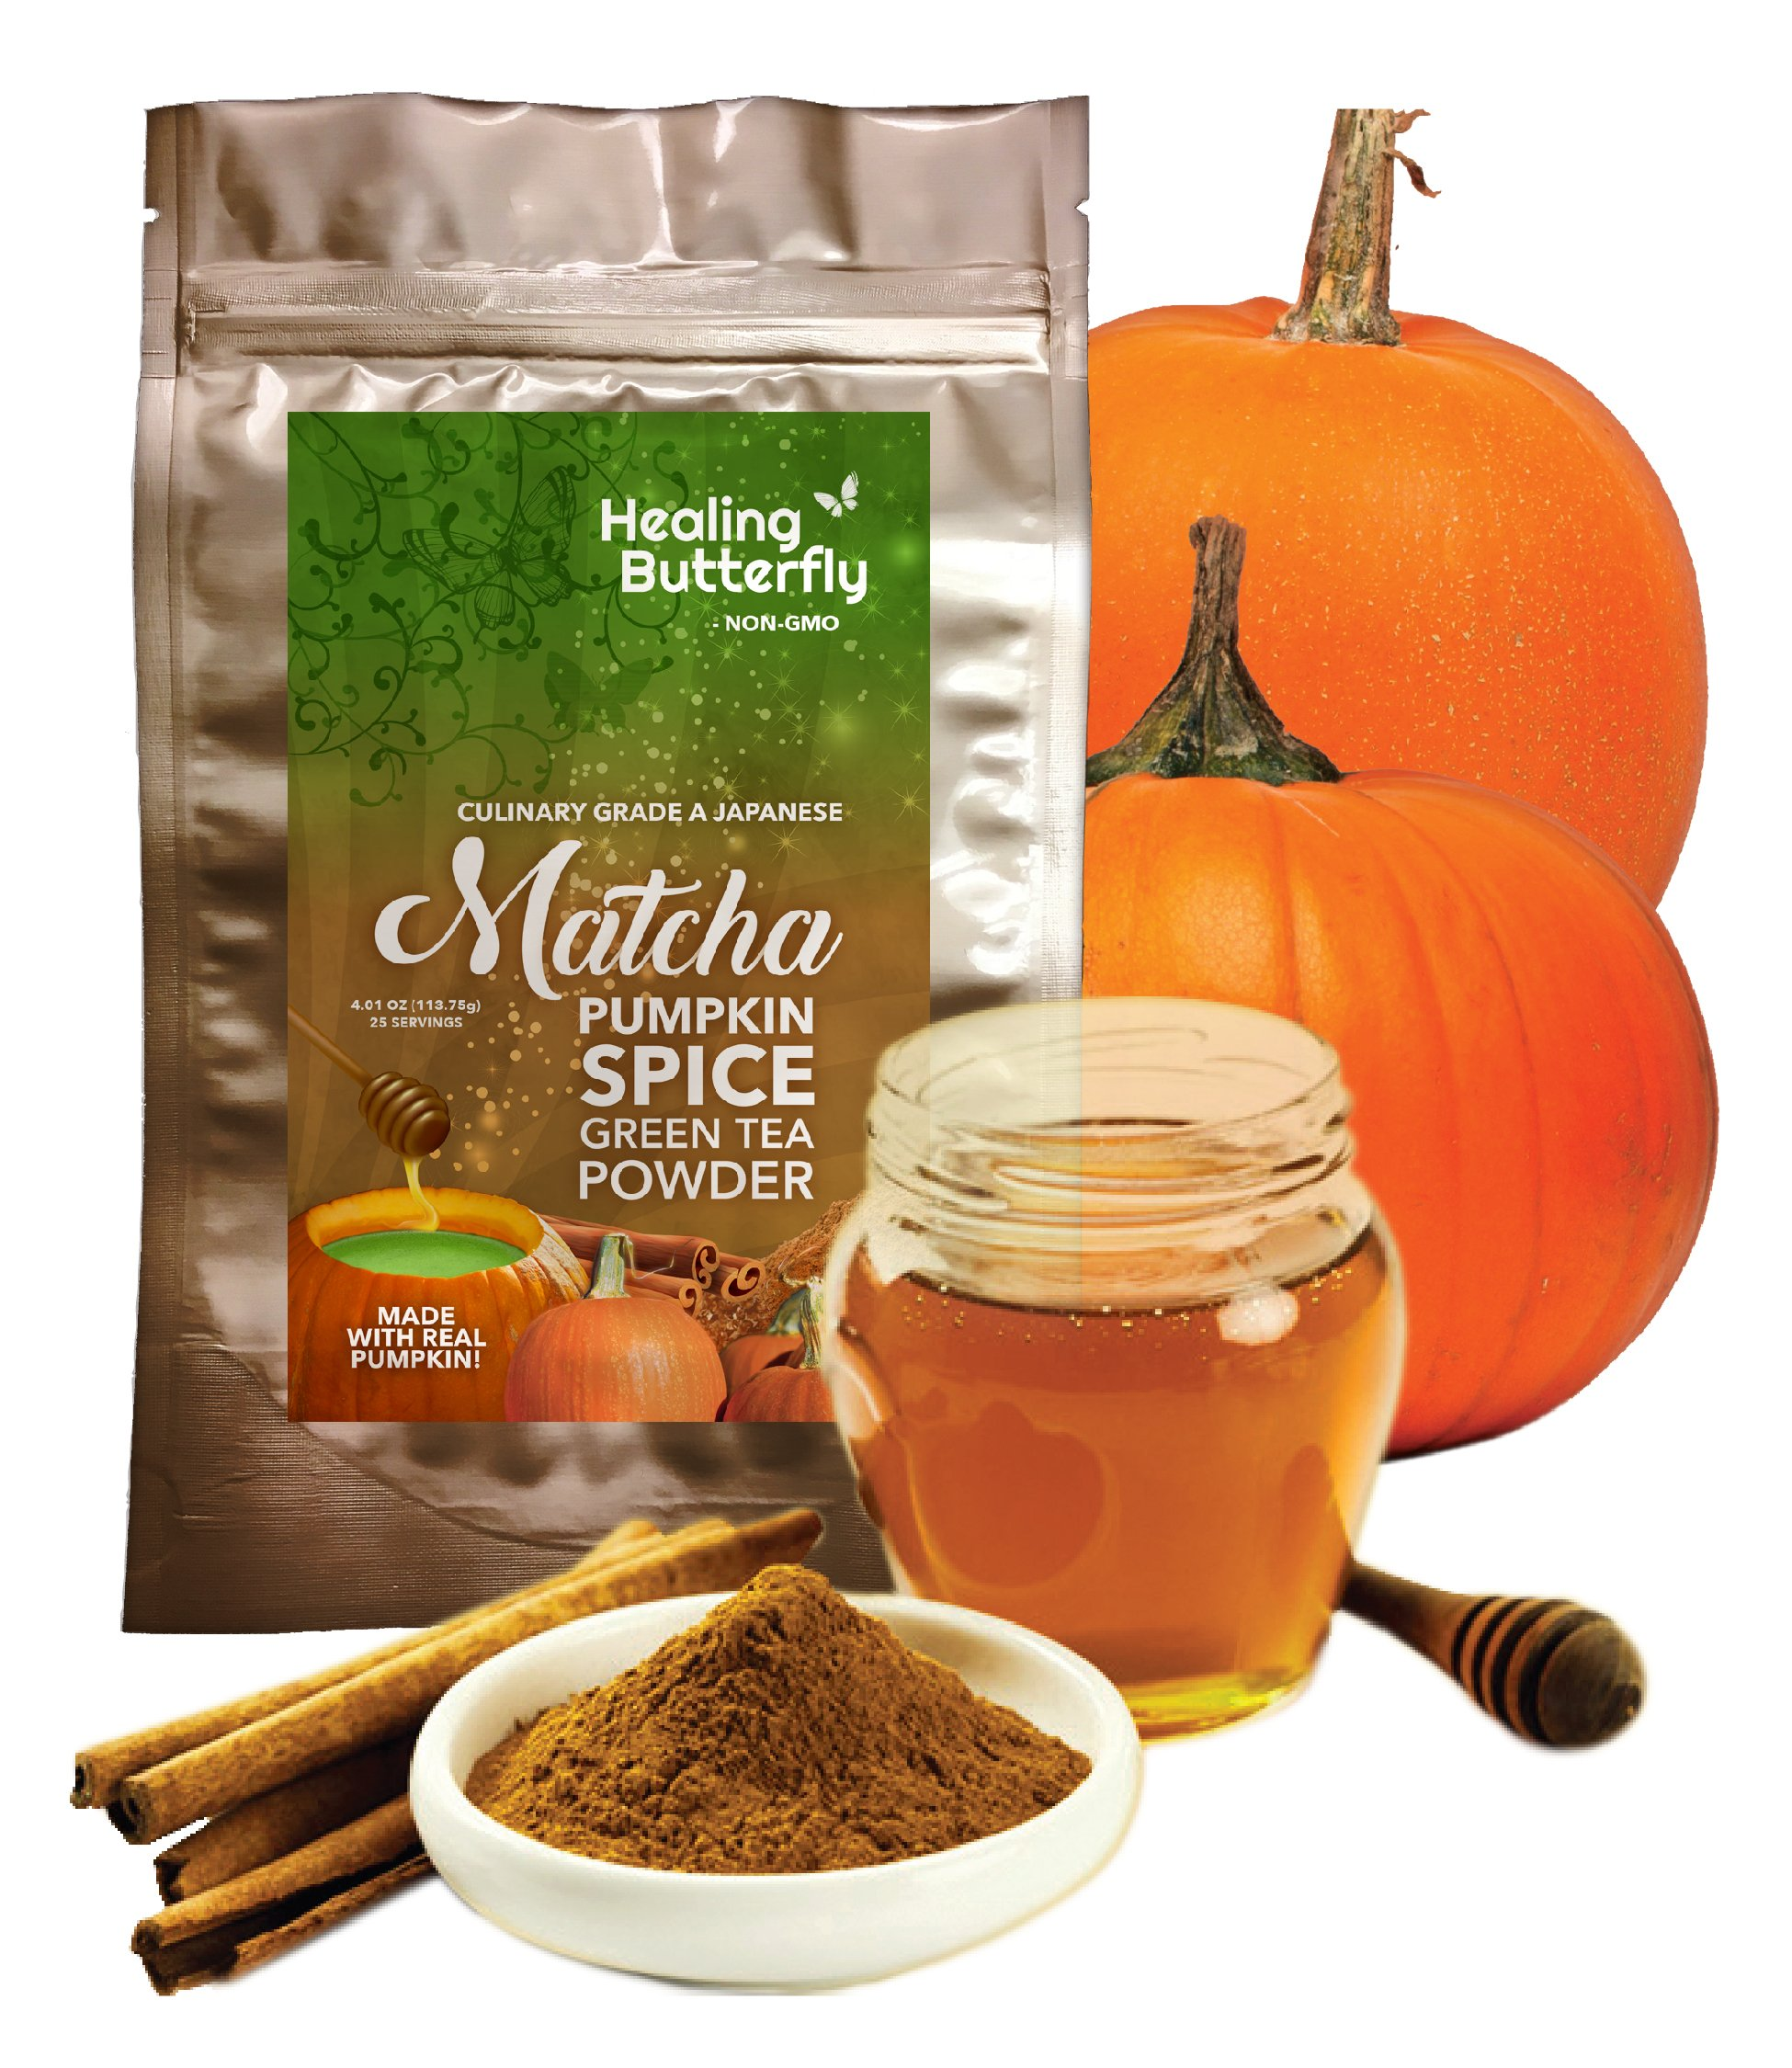 Pumpkin Spice Matcha Green Tea Powder, Organic Japanese Premium Grade, Packed with Nutrients and Antioxidants, Boosts Your Metabolism And Tastes Great, [113.75g, 4.01oz, 25 Servings] by Healing Butterfly